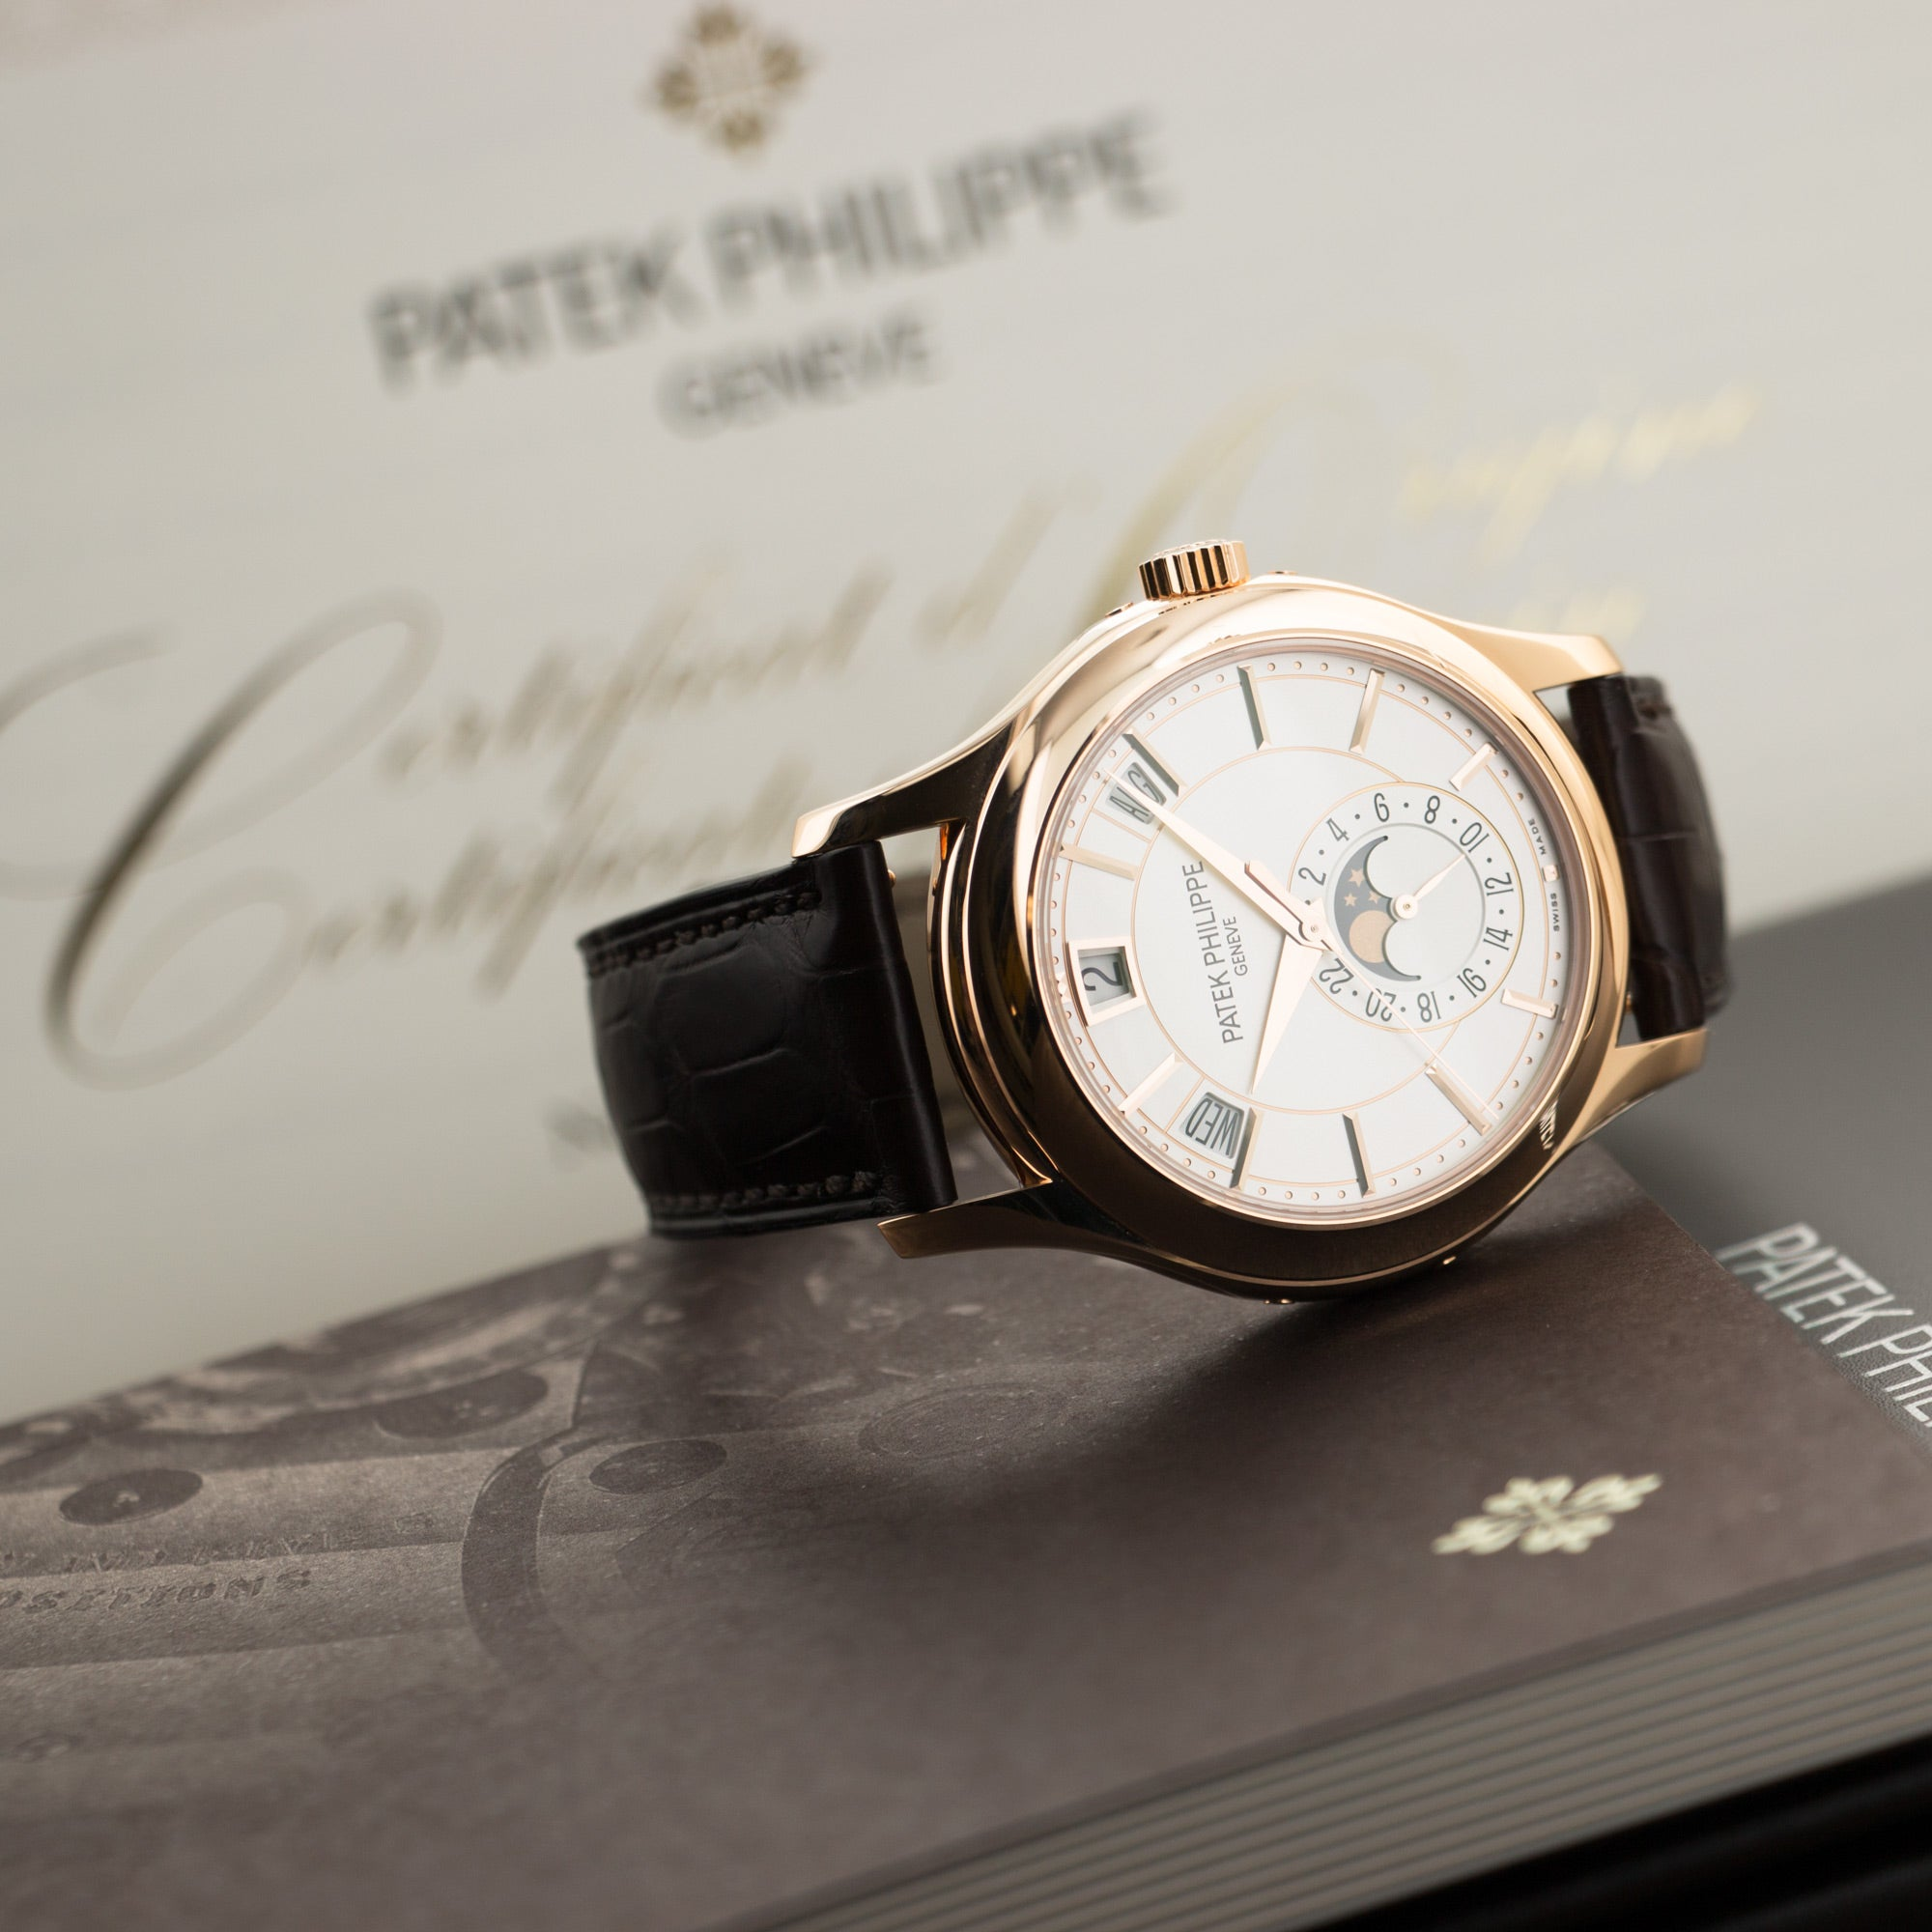 Patek Philippe Annual Calendar 5205R-001 18k RG  Like New, Worn a Few Times Gents 18k RG Opaline 40mm Automatic 2017 Brown Crocodile Original Box and Certificate